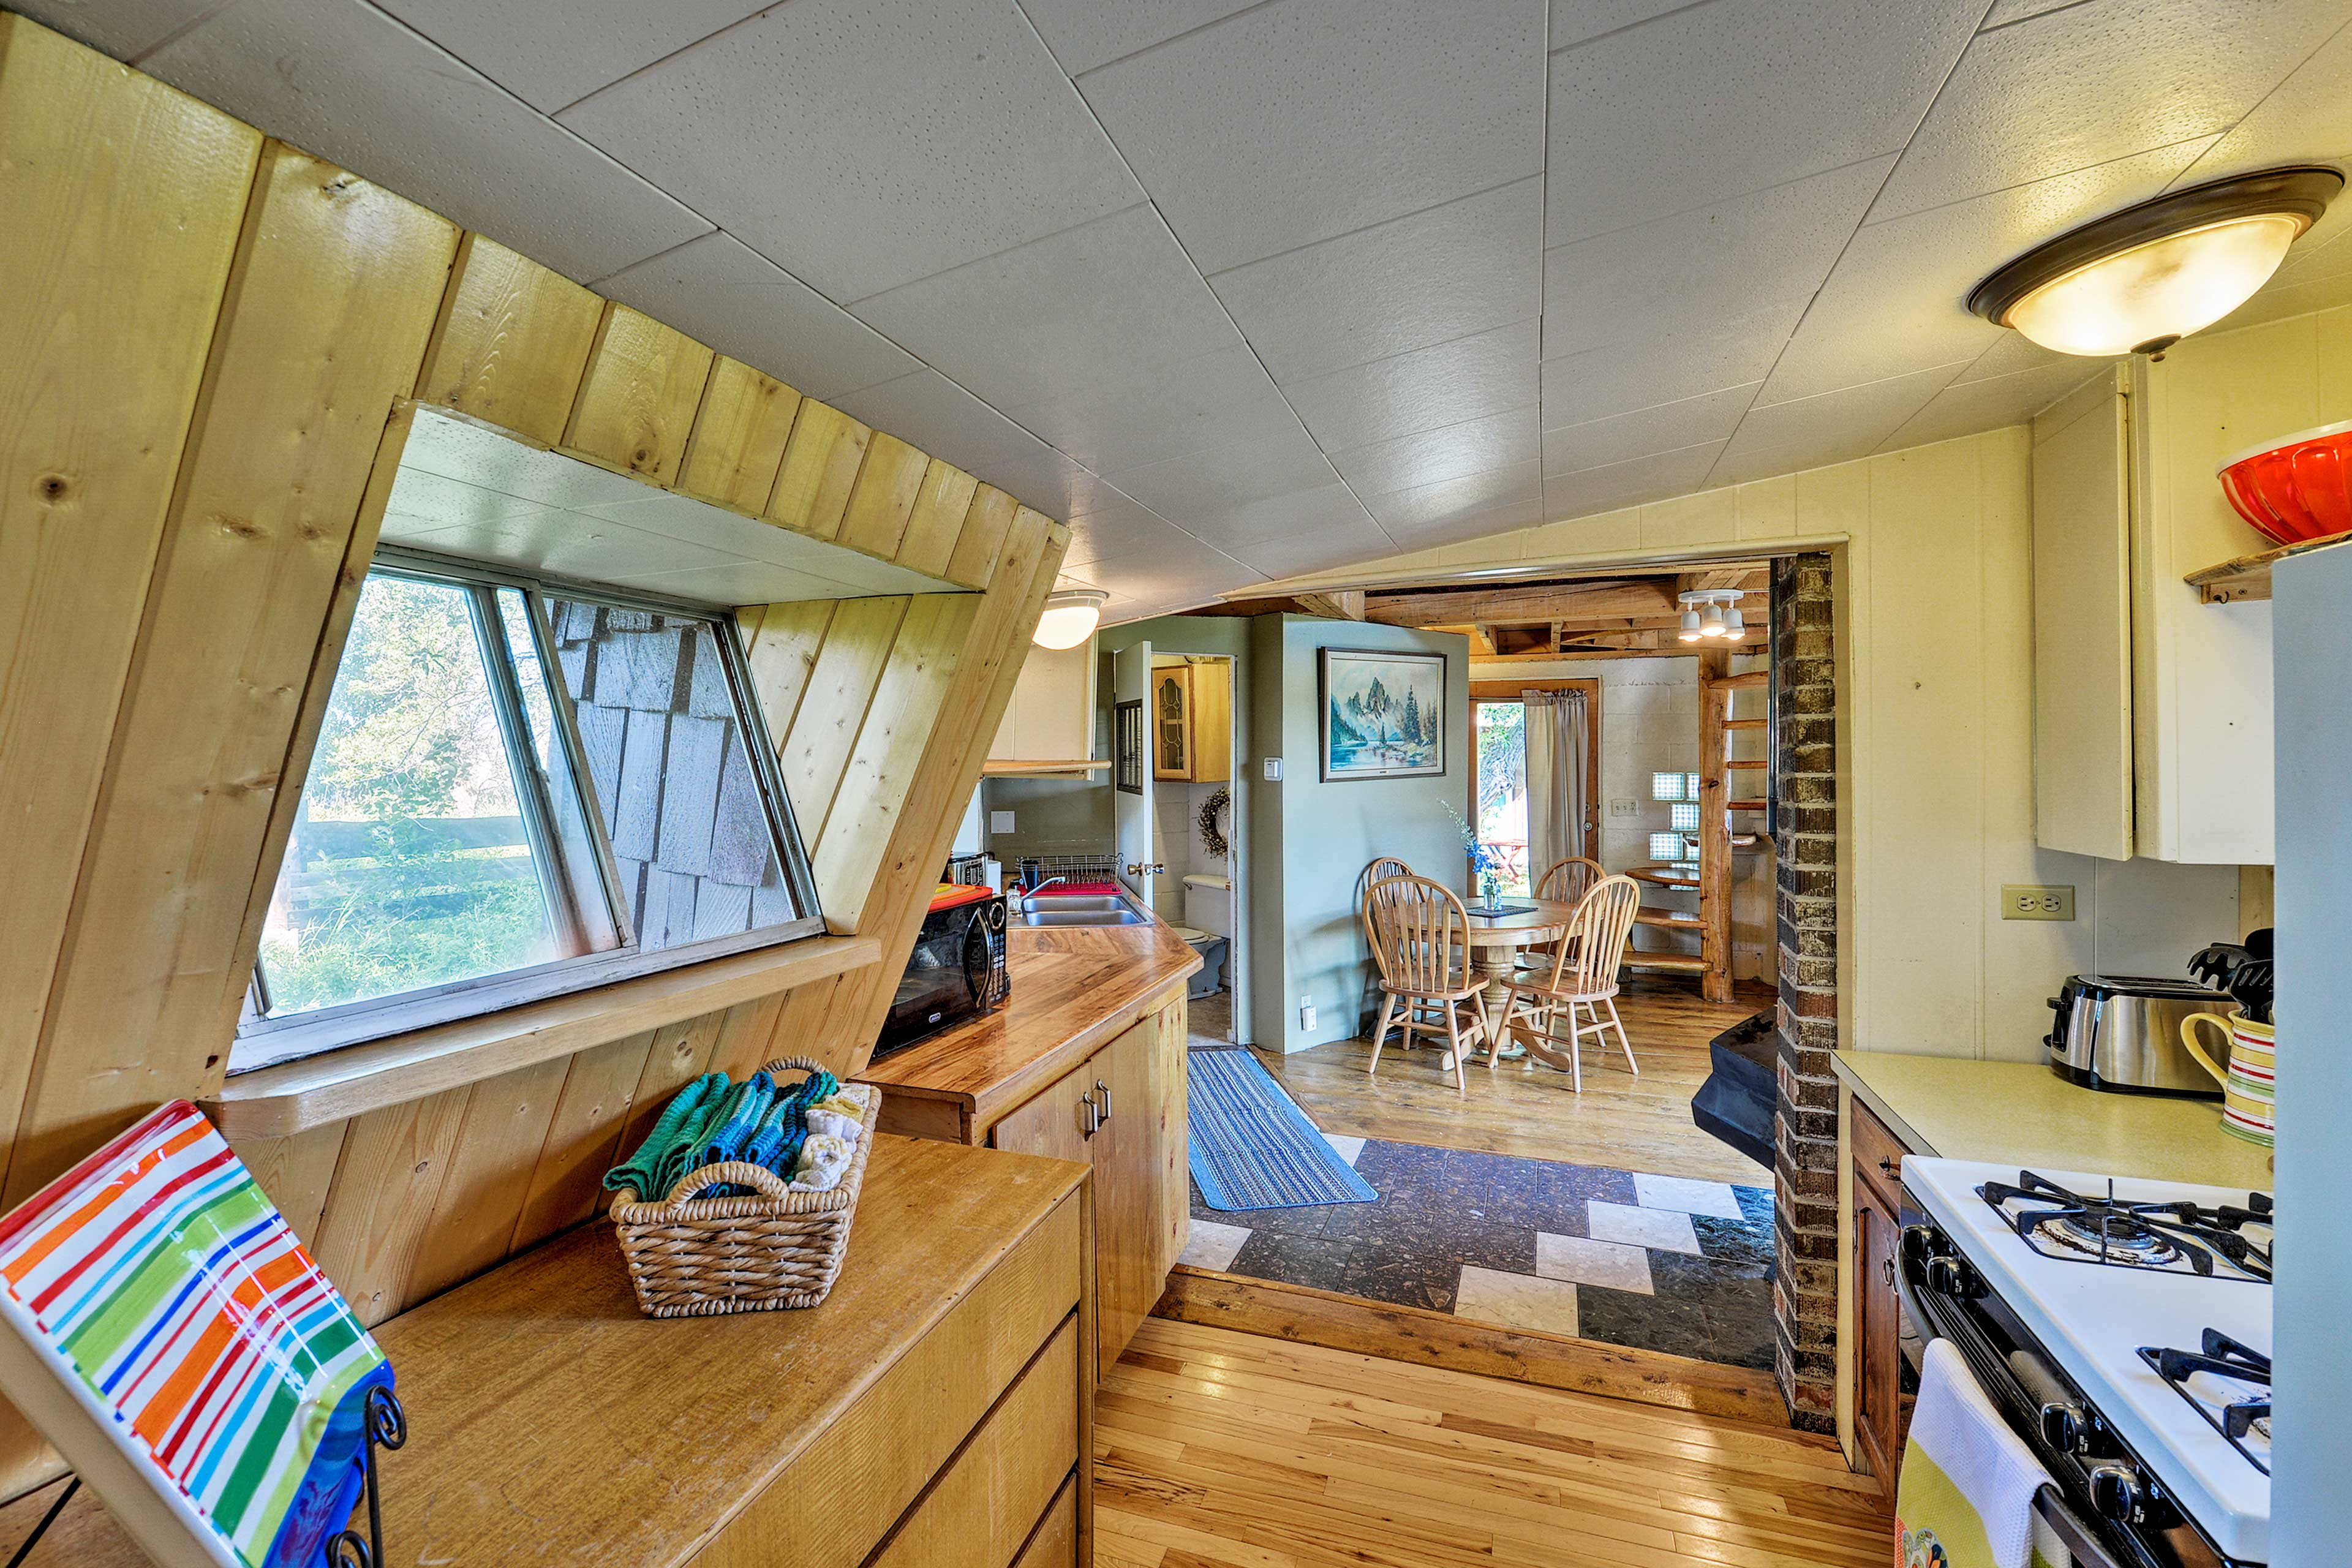 Savor the views and mountain air from the kitchen's windows.